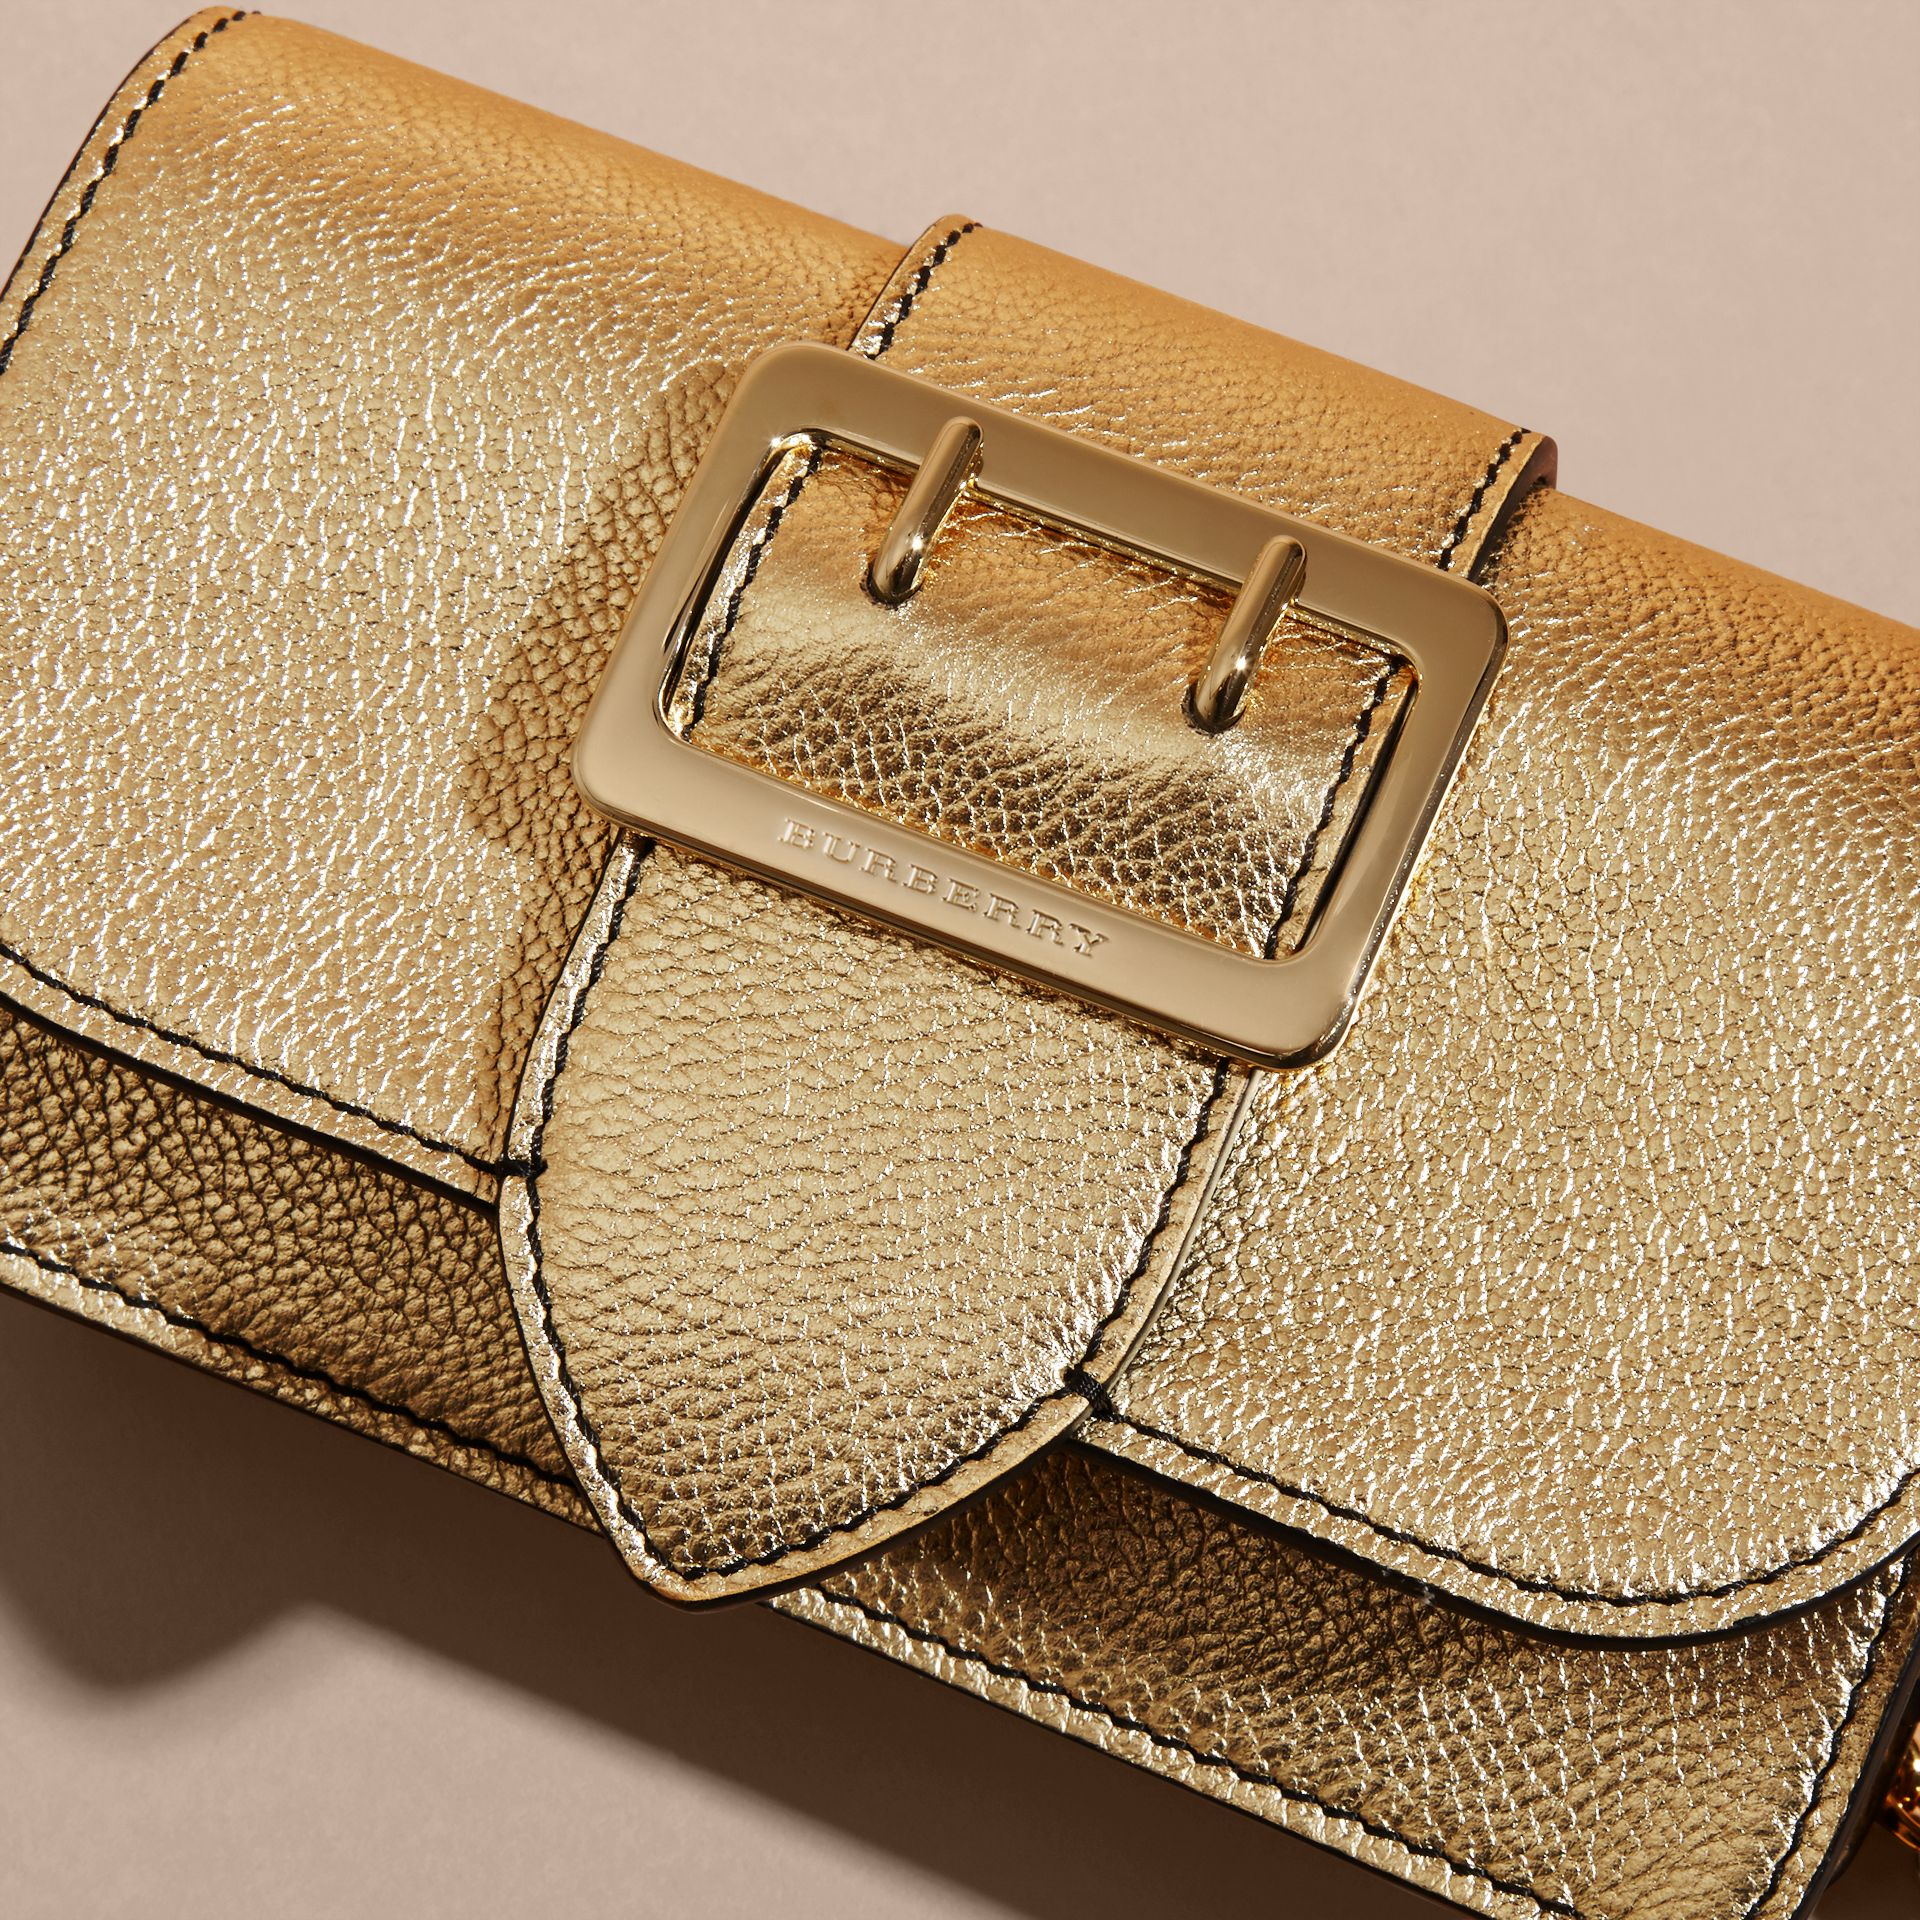 Gold The Mini Buckle Bag in Metallic Grainy Leather Gold - gallery image 2